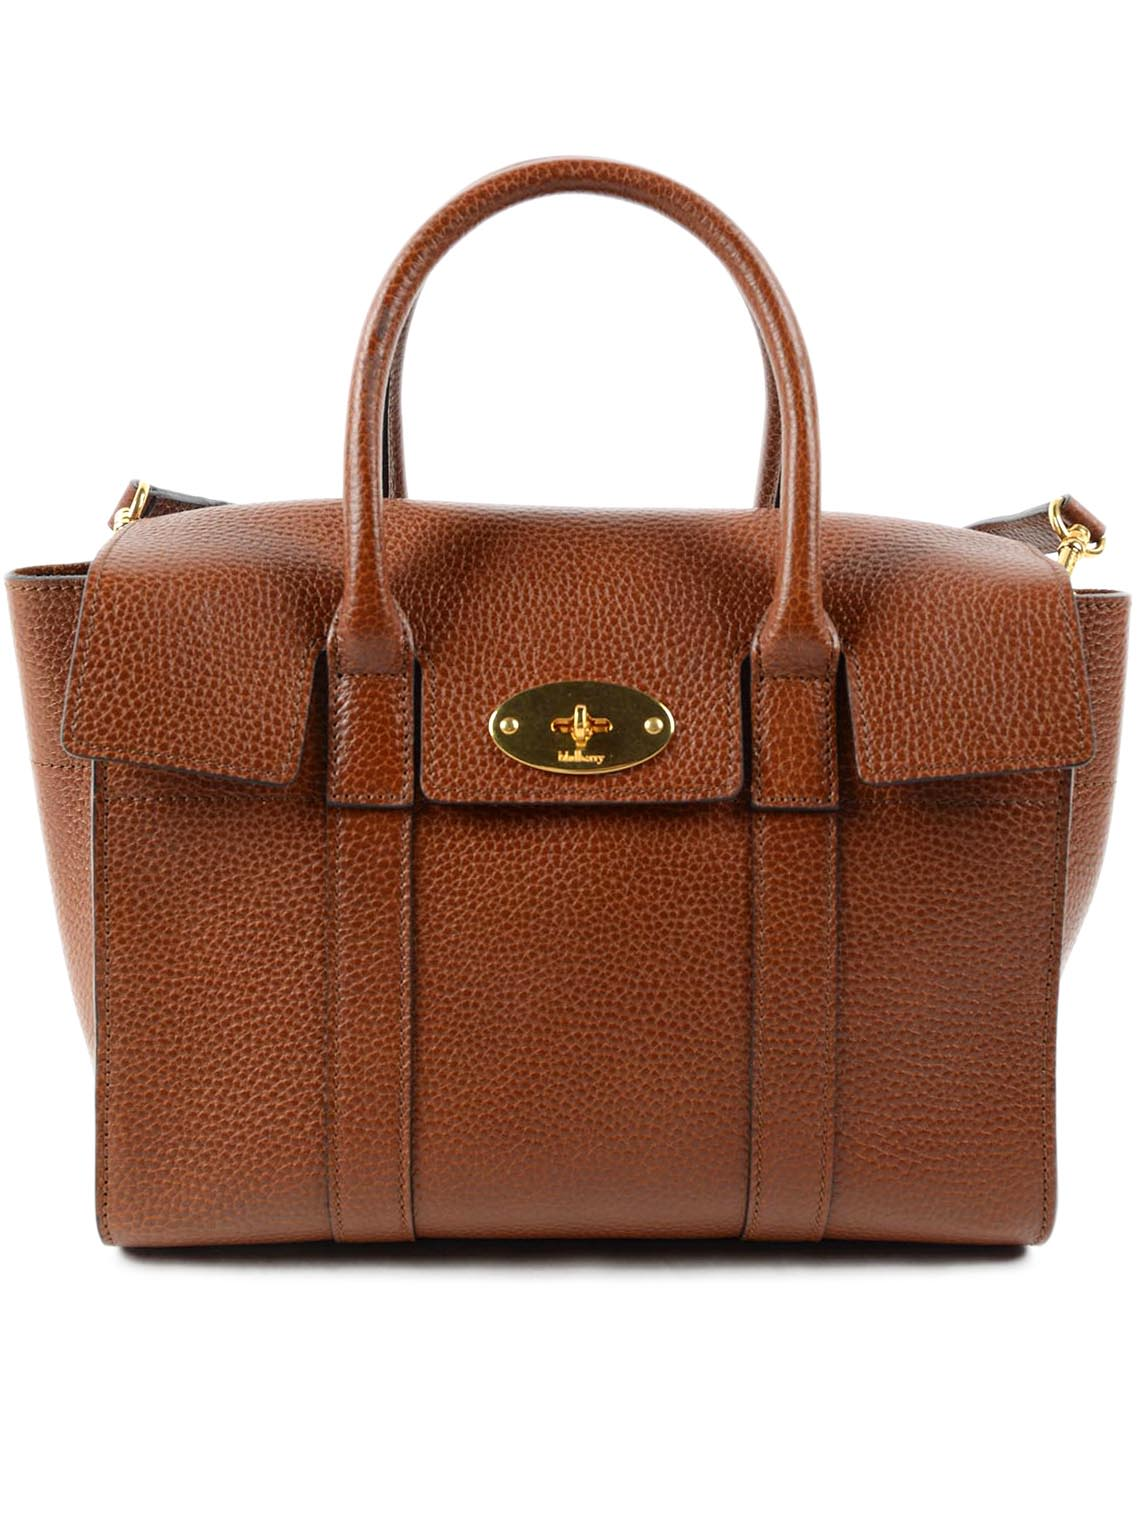 0a8862a8122 italist | Best price in the market for Mulberry Mulberry Removable ...